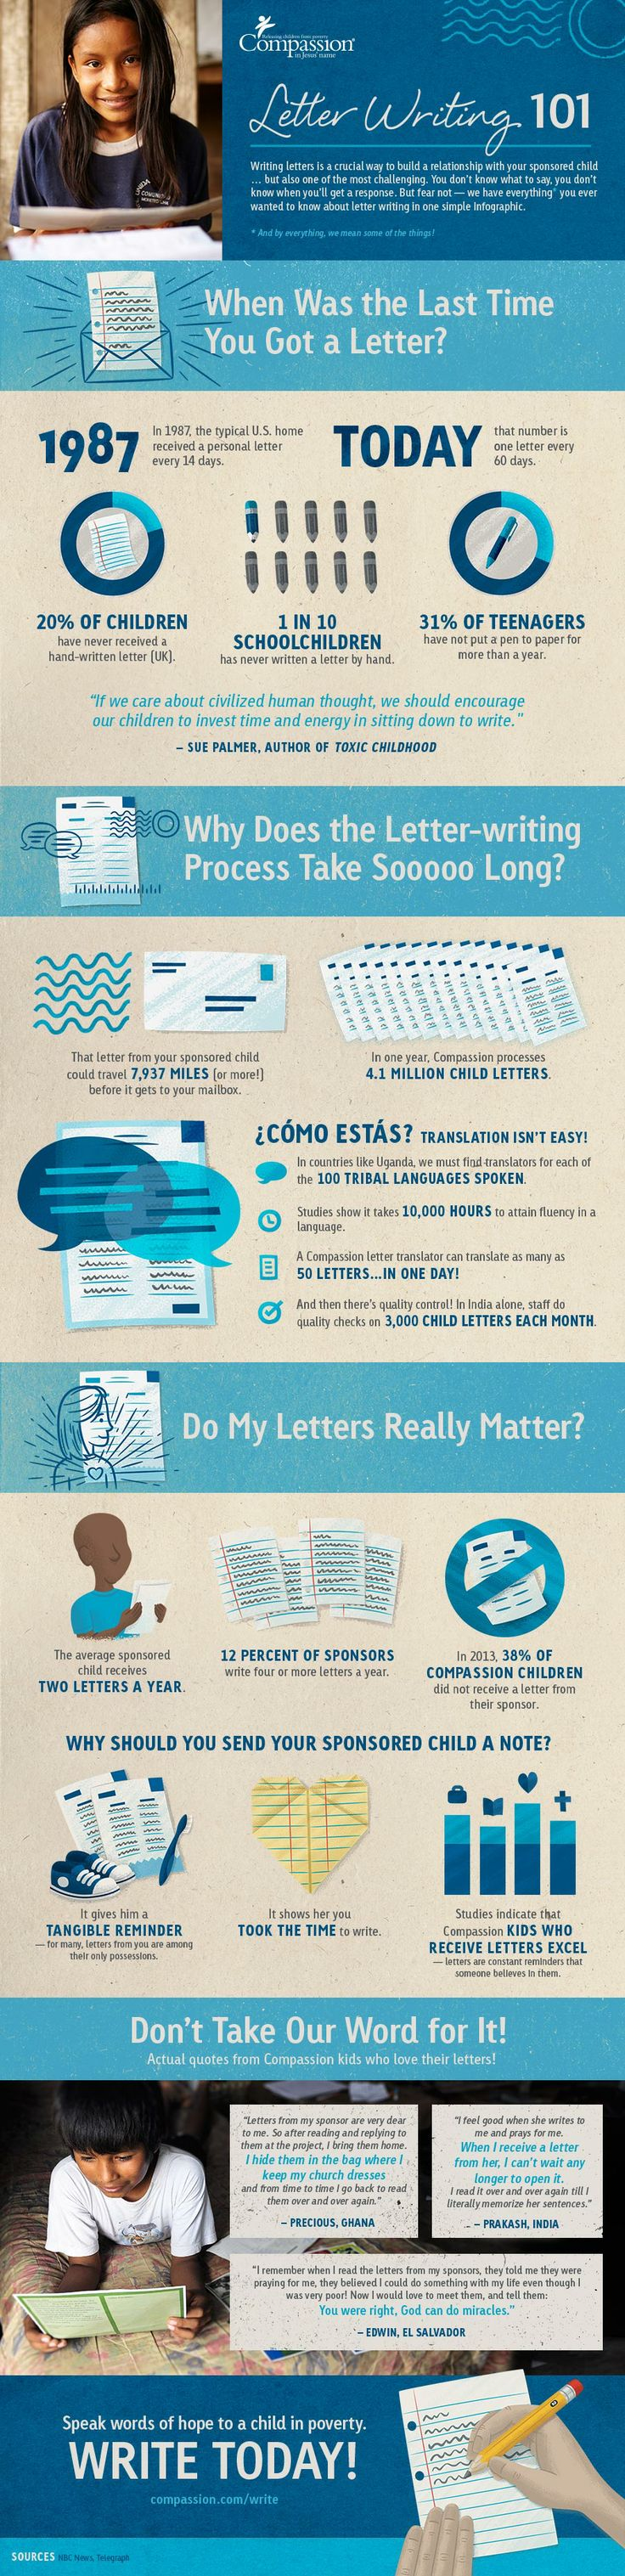 Letter Writing 101 infographic 15 best Compassion